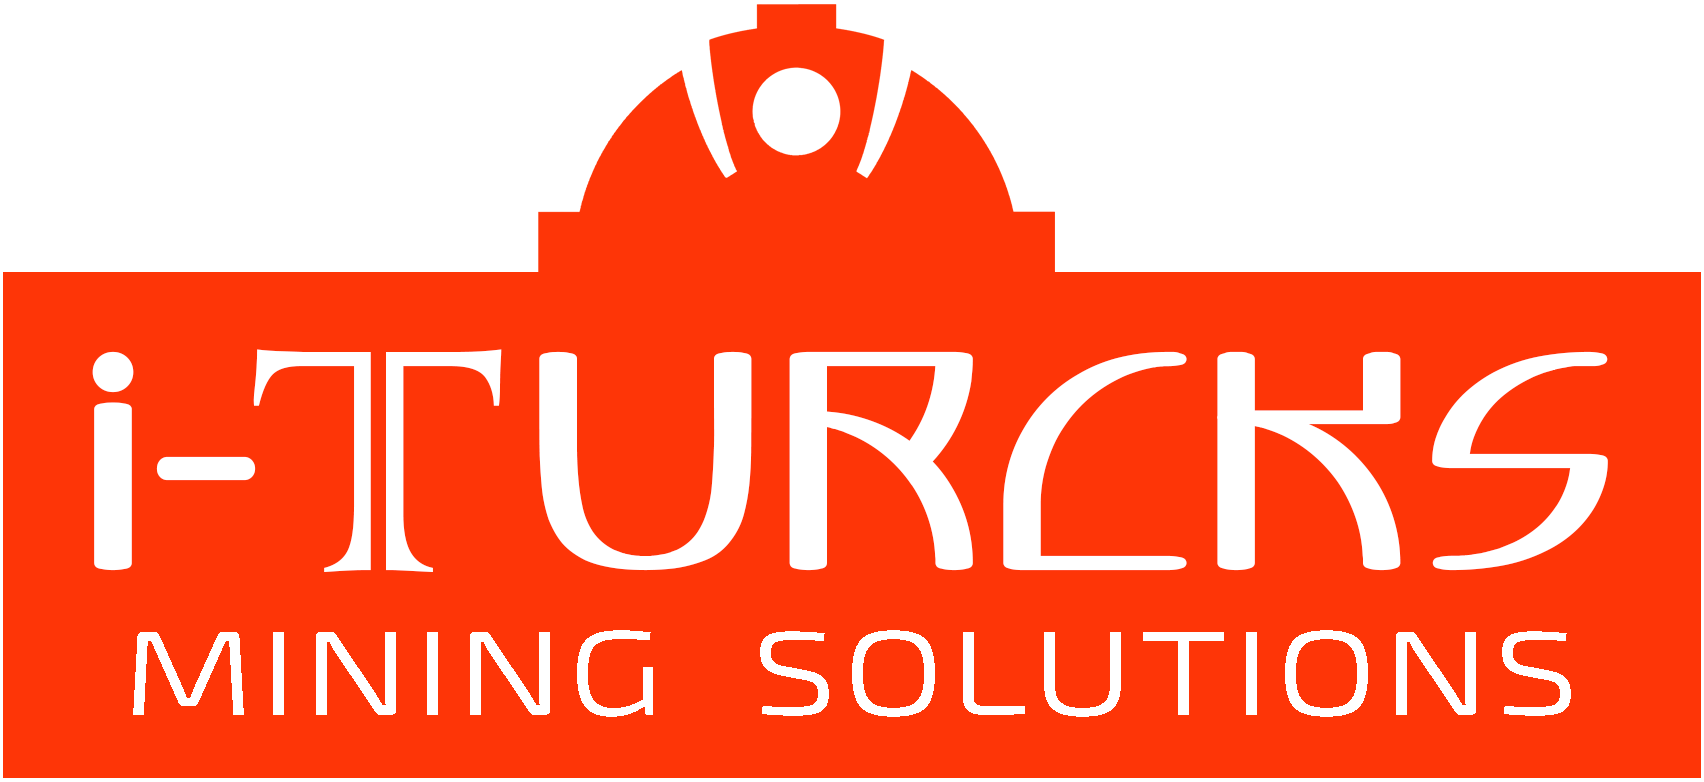 cropped-iturcks-new-logo.png